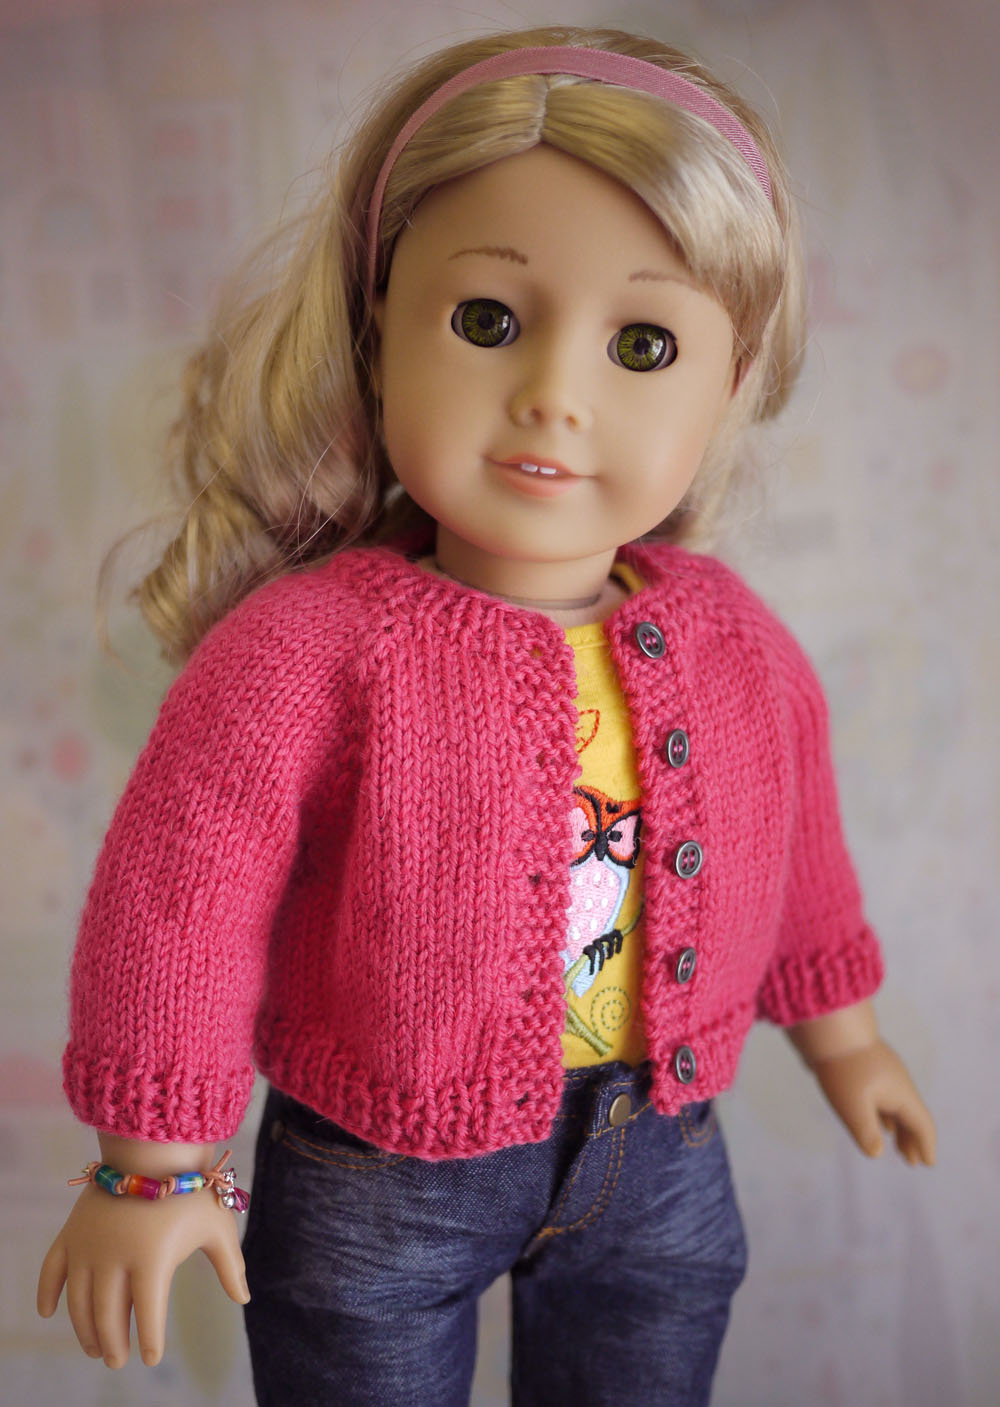 Free Knitting Pattern For Cardigan : American Girl Dolls Cindy Rice Designs